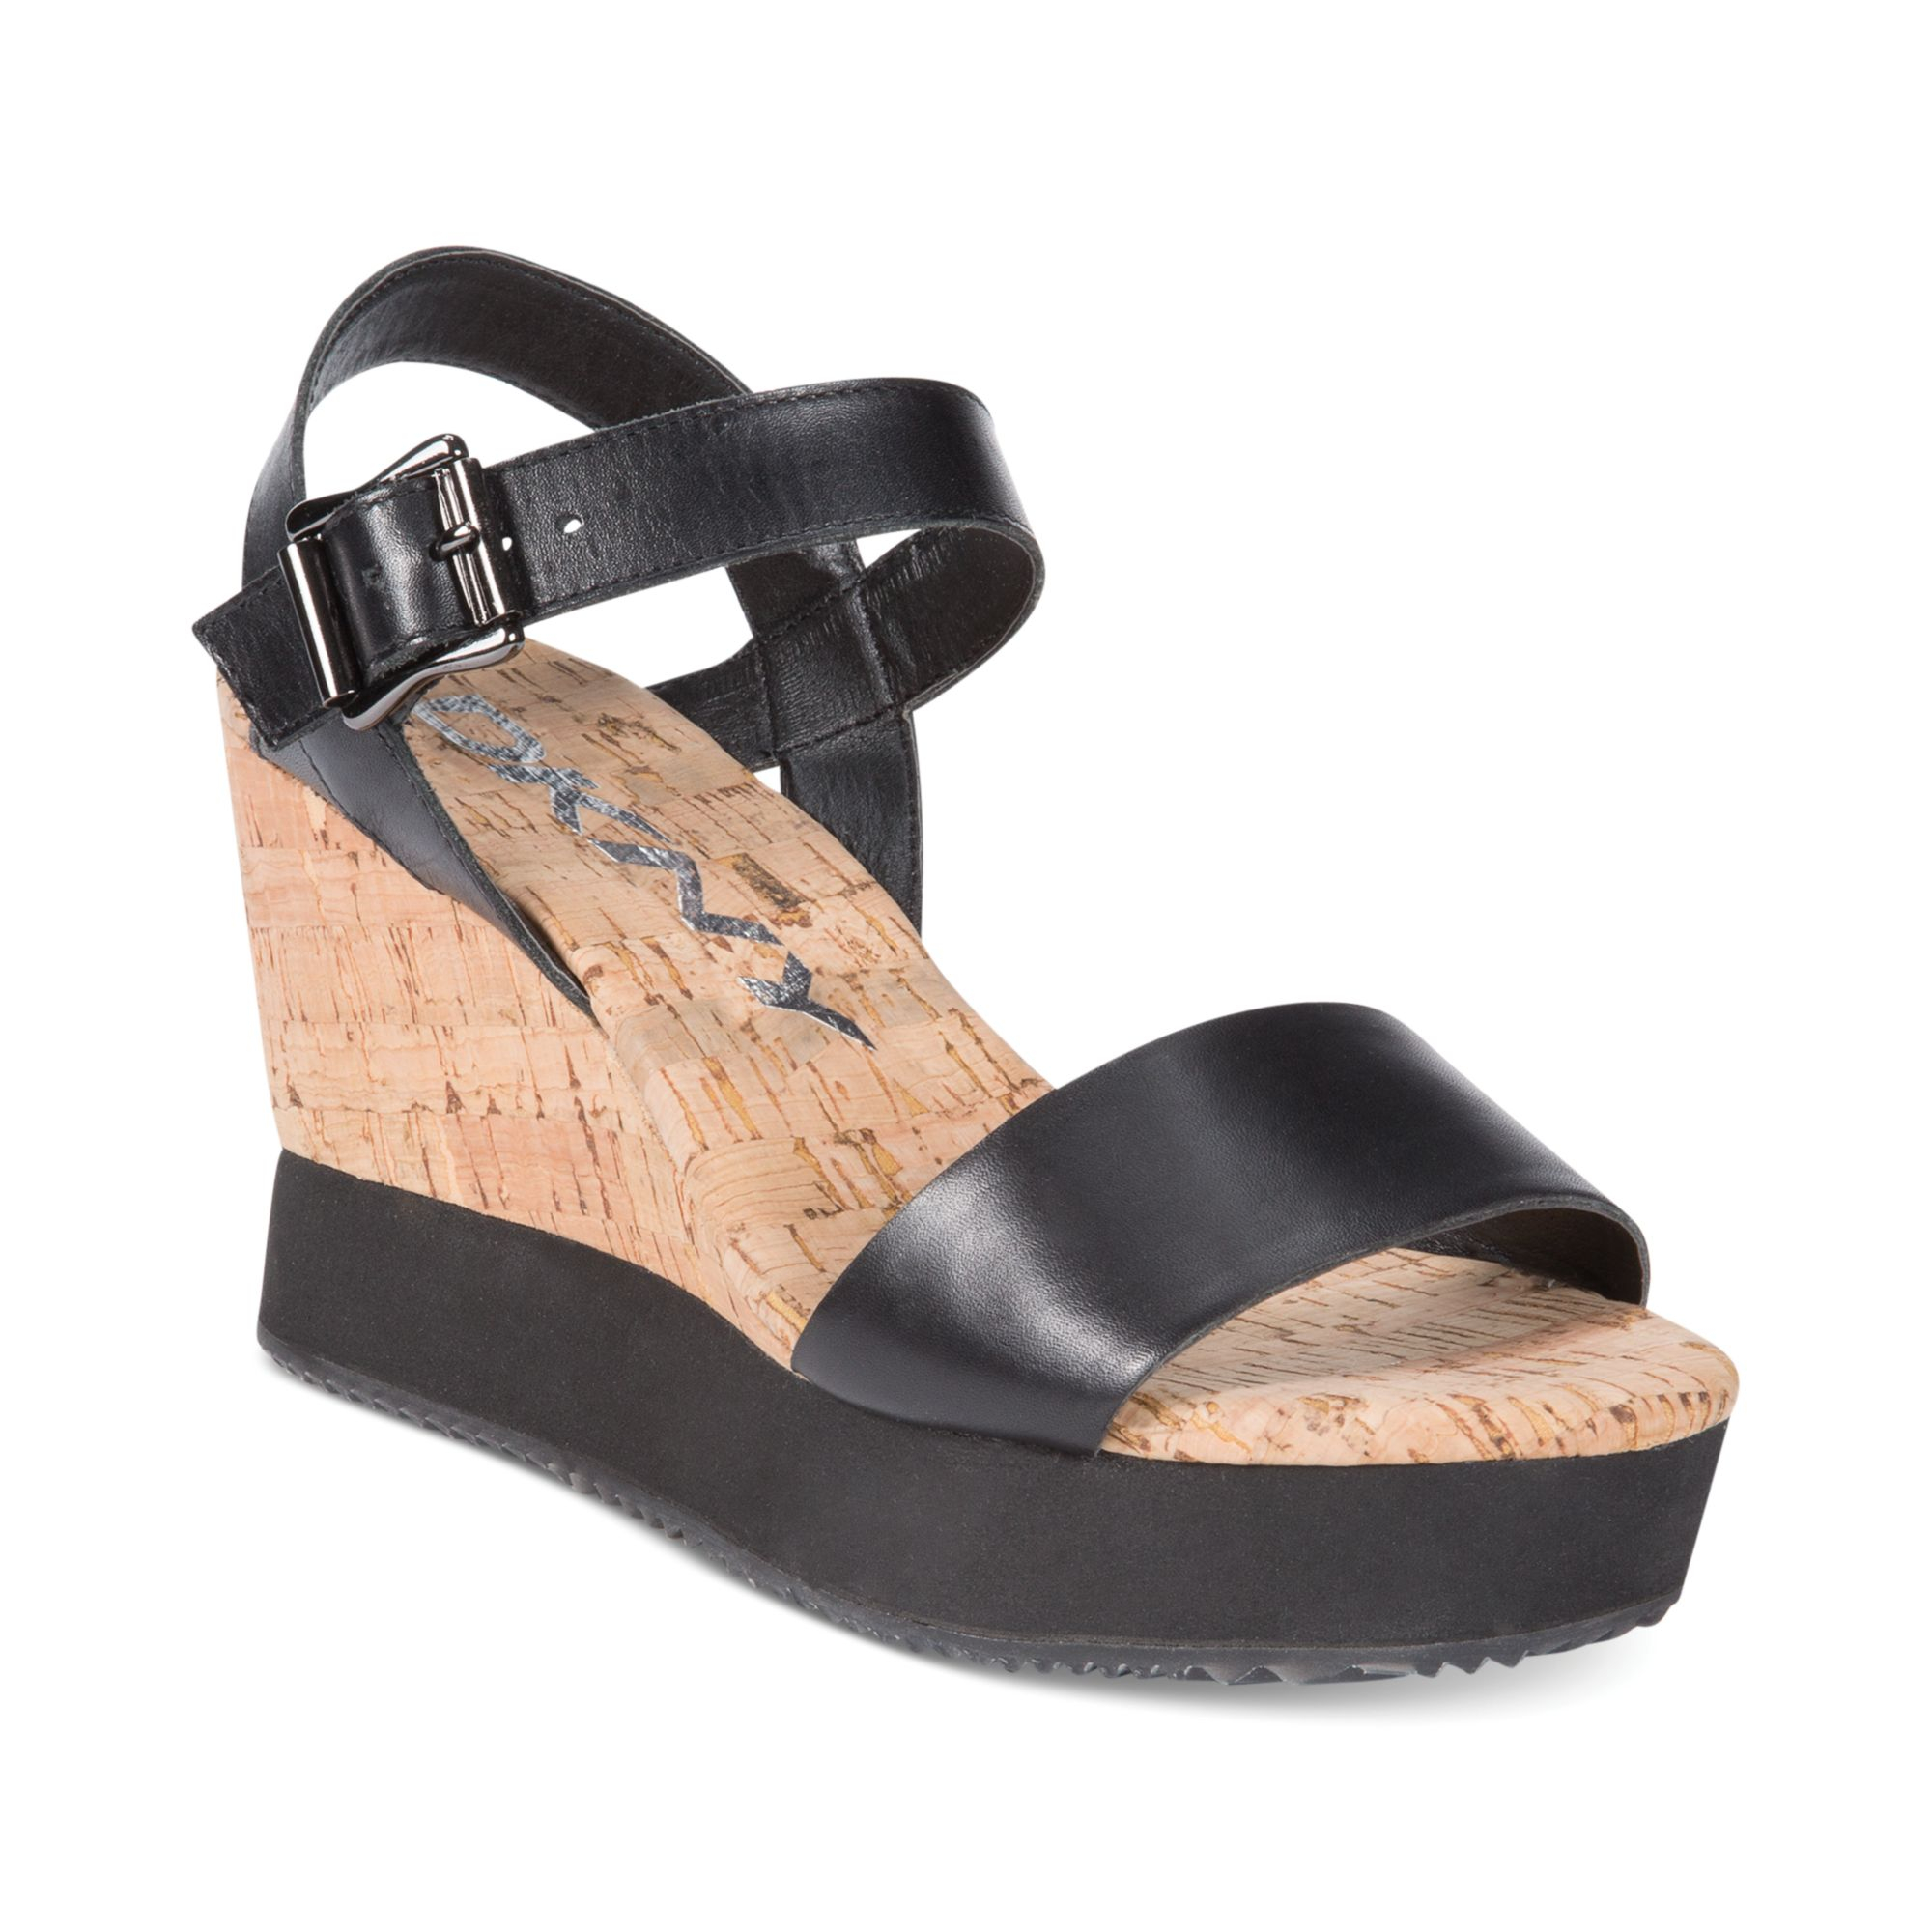 dkny sandals 28 images dkny 23120207 women s wedge